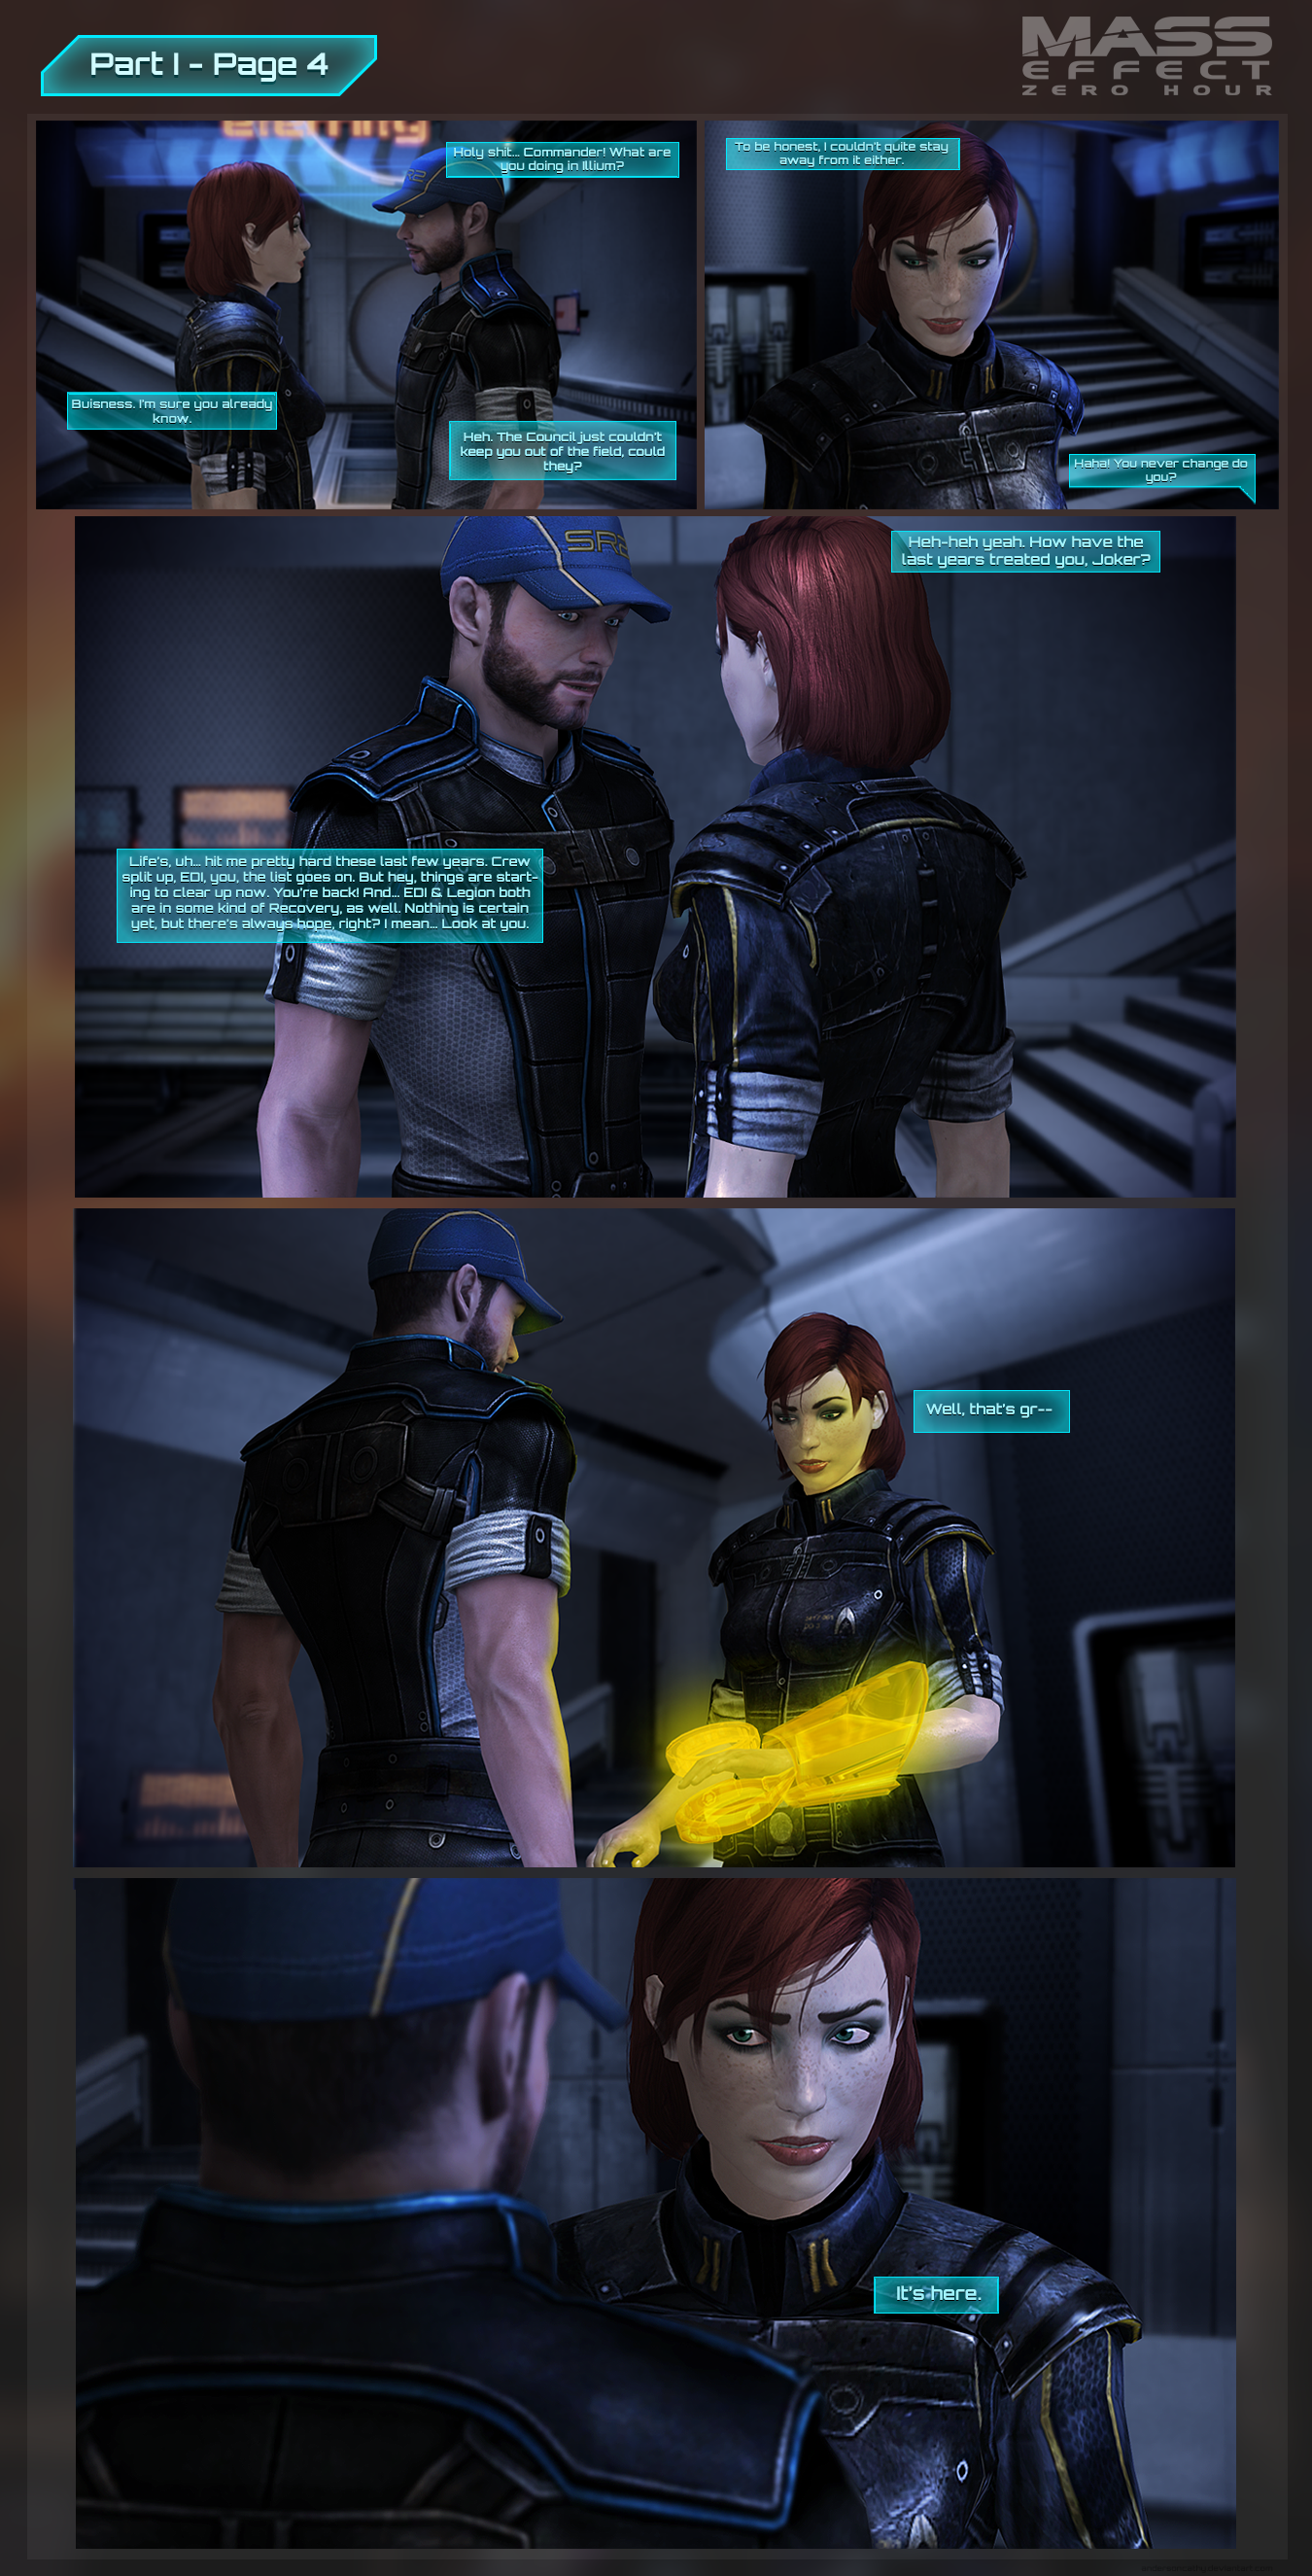 Mass Effect: Zero Hour - Part I Page 4 by andersoncathy